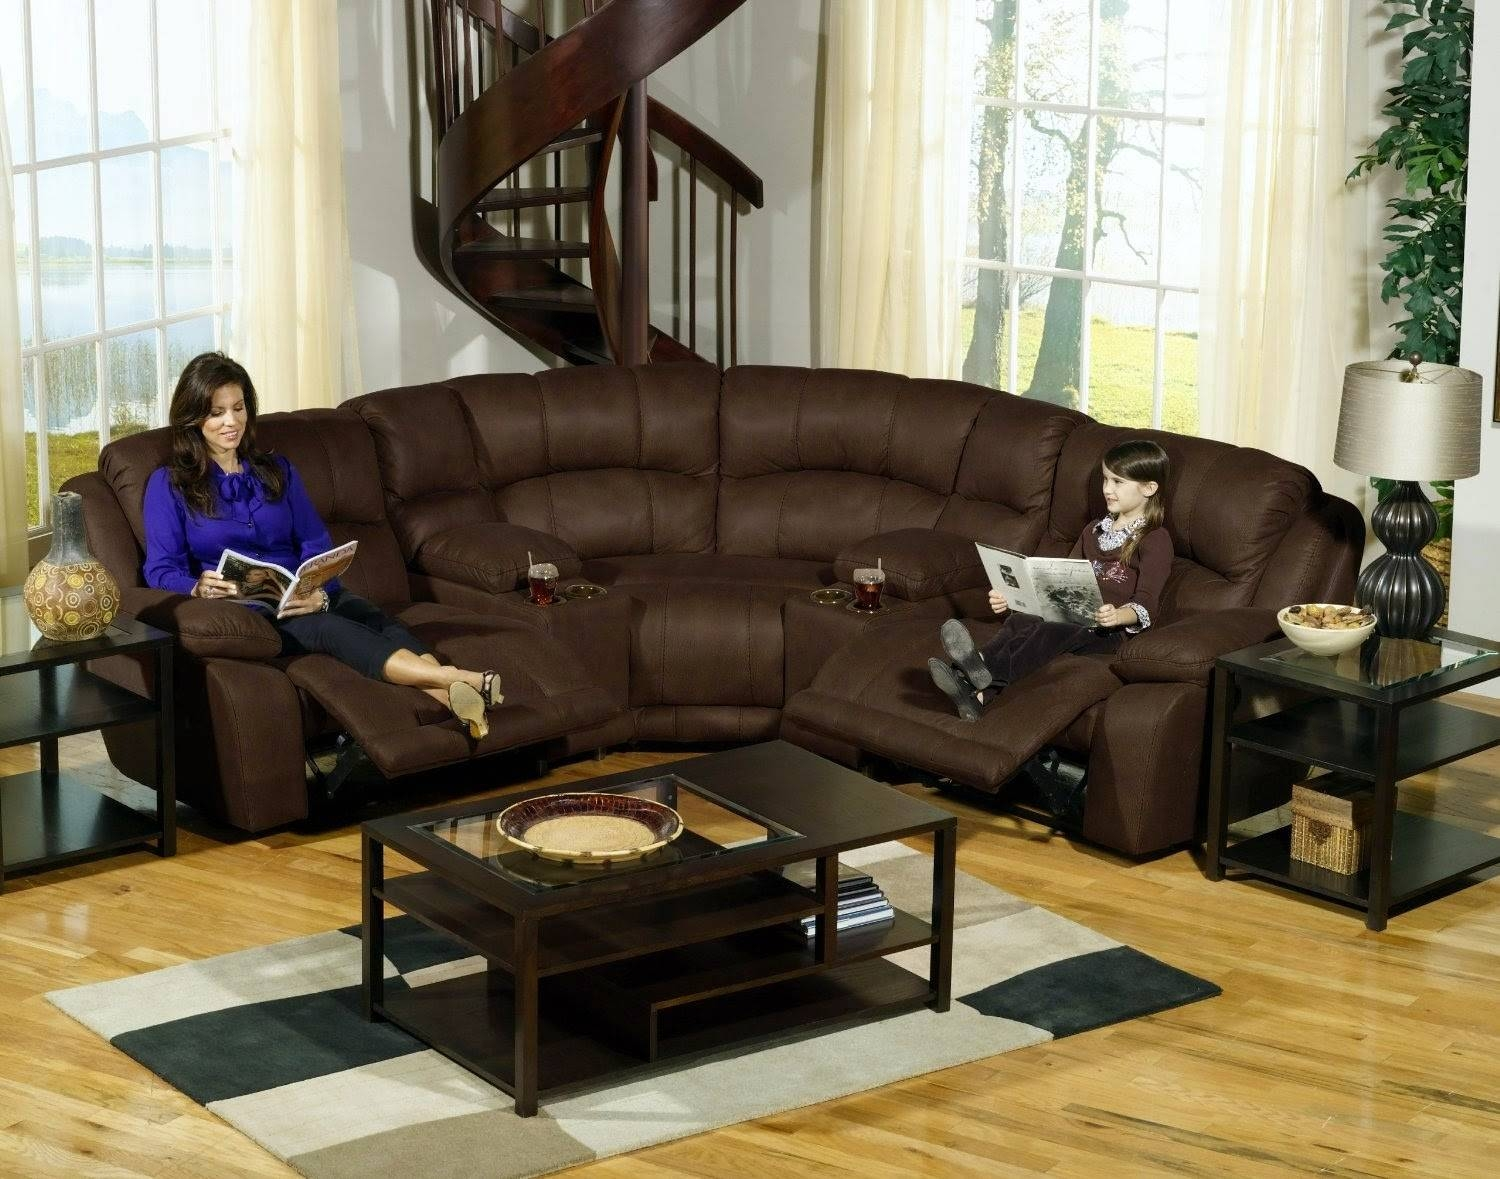 The Most Popular Slipcover For Sectional Sofa With Chaise 67 For regarding Slipcovers for Sectional Sofas & 2017 Latest Slipcovers for Sectional Sofas With Recliners islam-shia.org